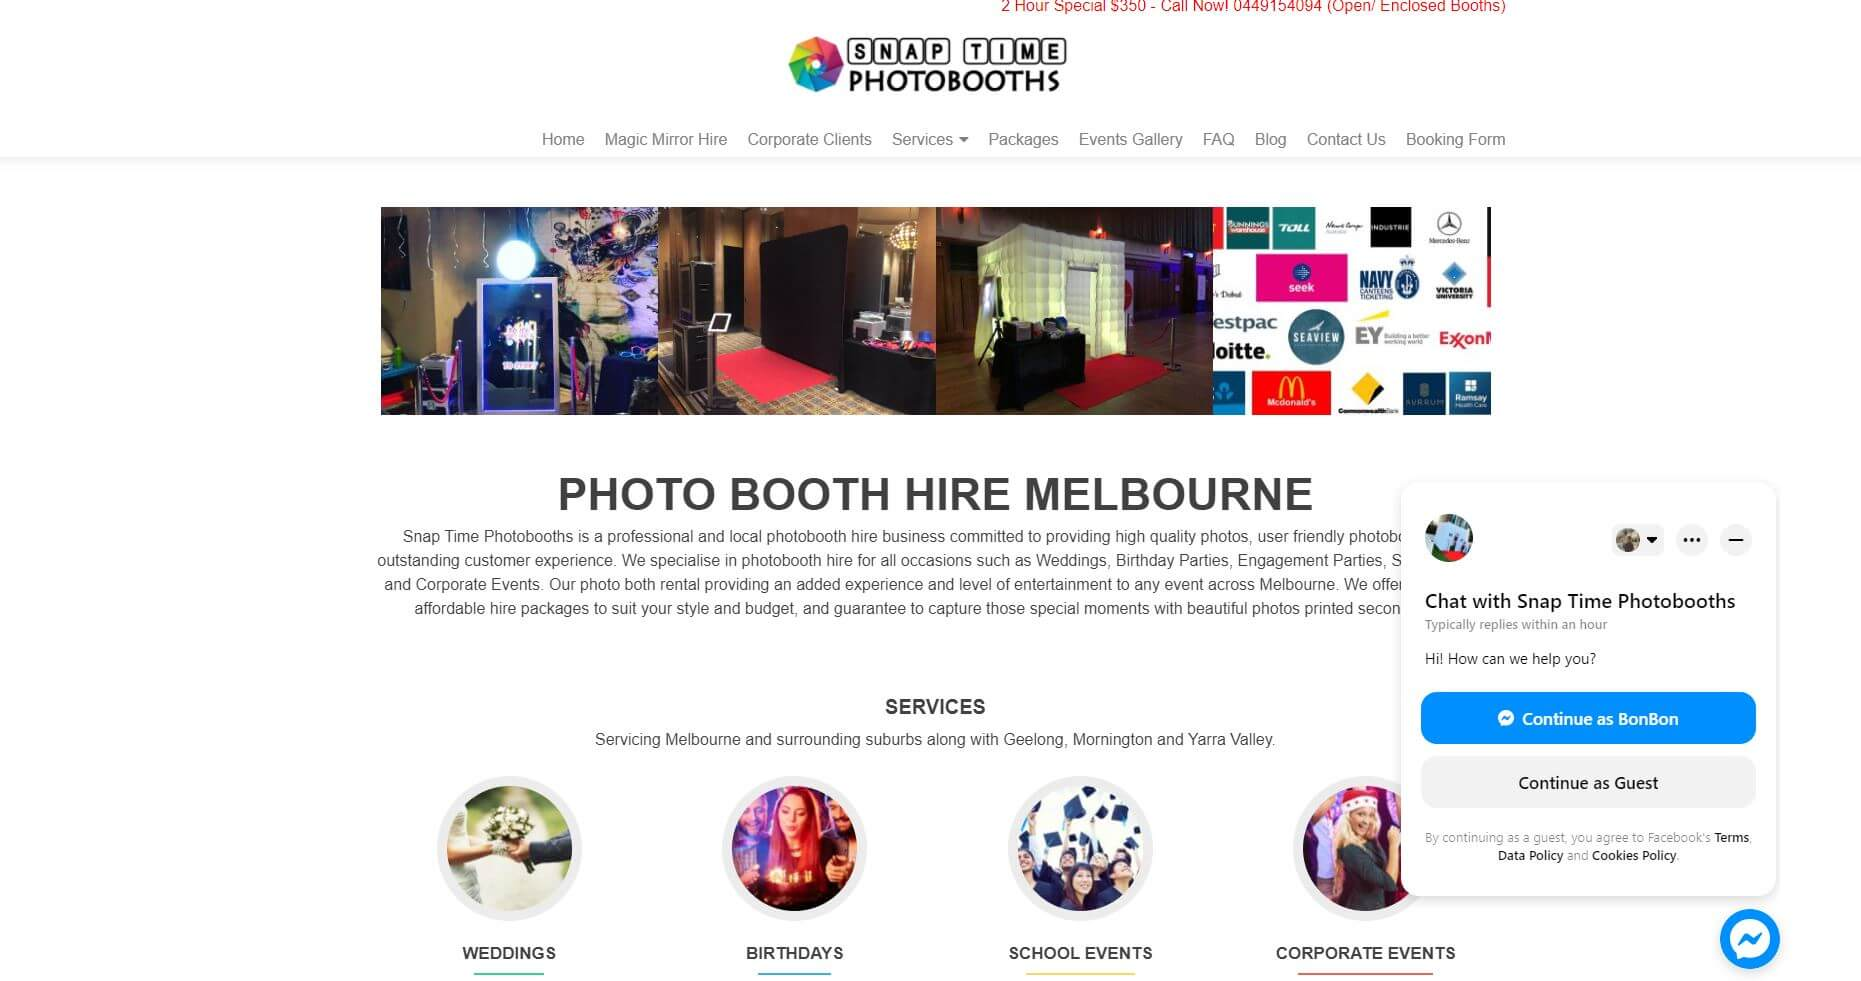 Snap Time Photobooths Wedding Hire Melbourne